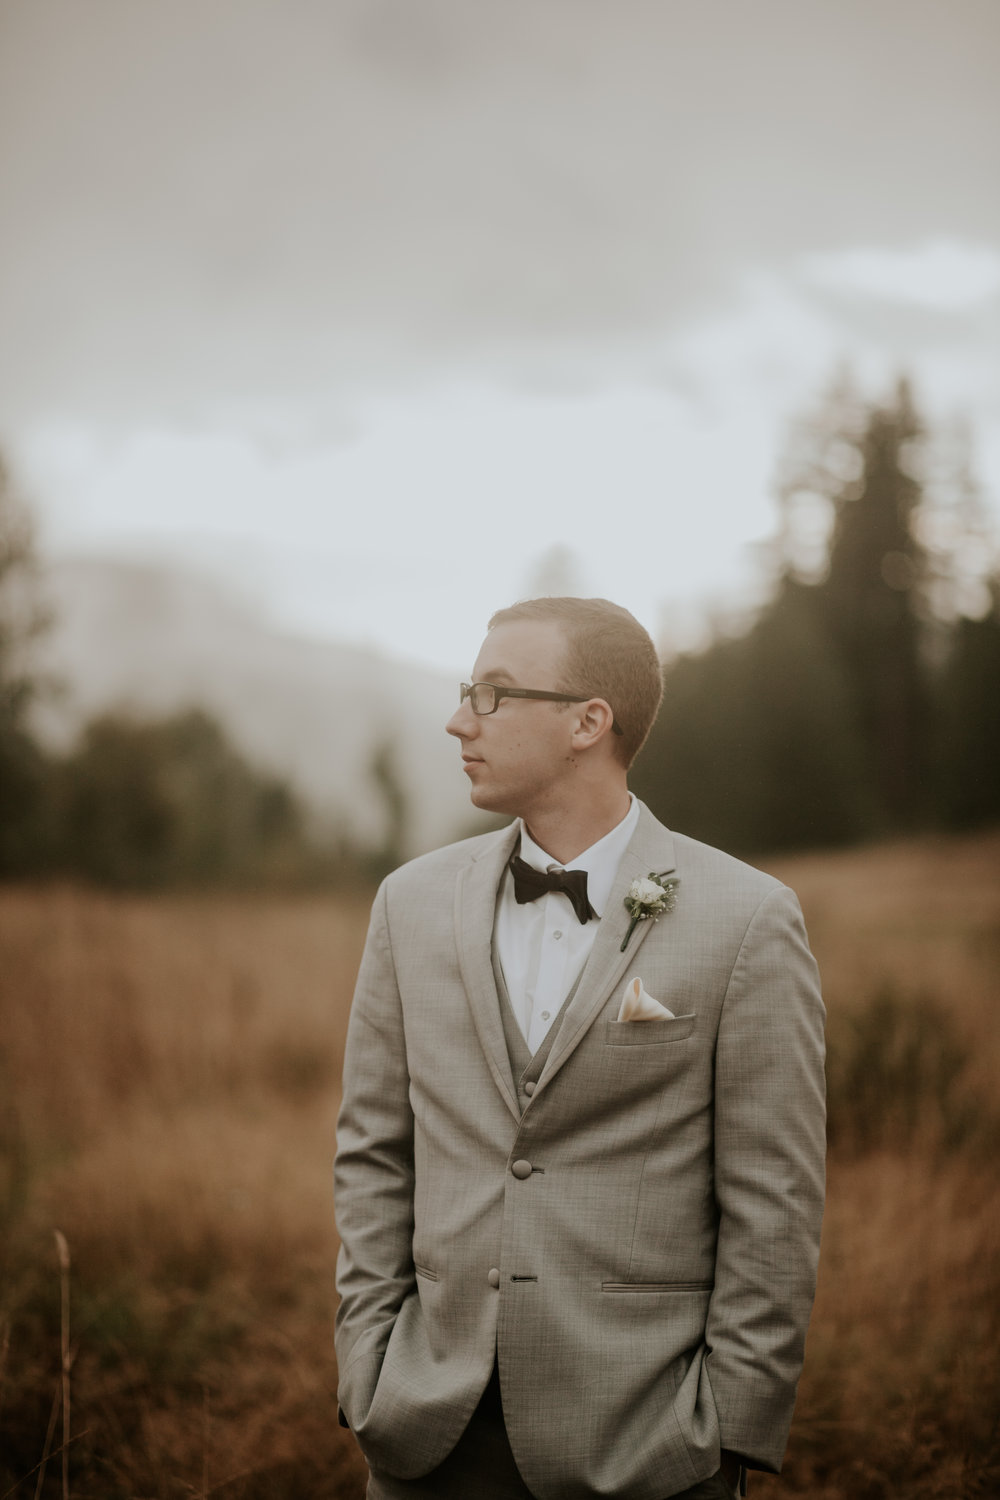 Port-Angeles-elopement-wedding-pnw-olympic-peninsula-photographer-portrait-kayladawnphoto-kayla-dawn-photography-olympic-national-park-95.jpg